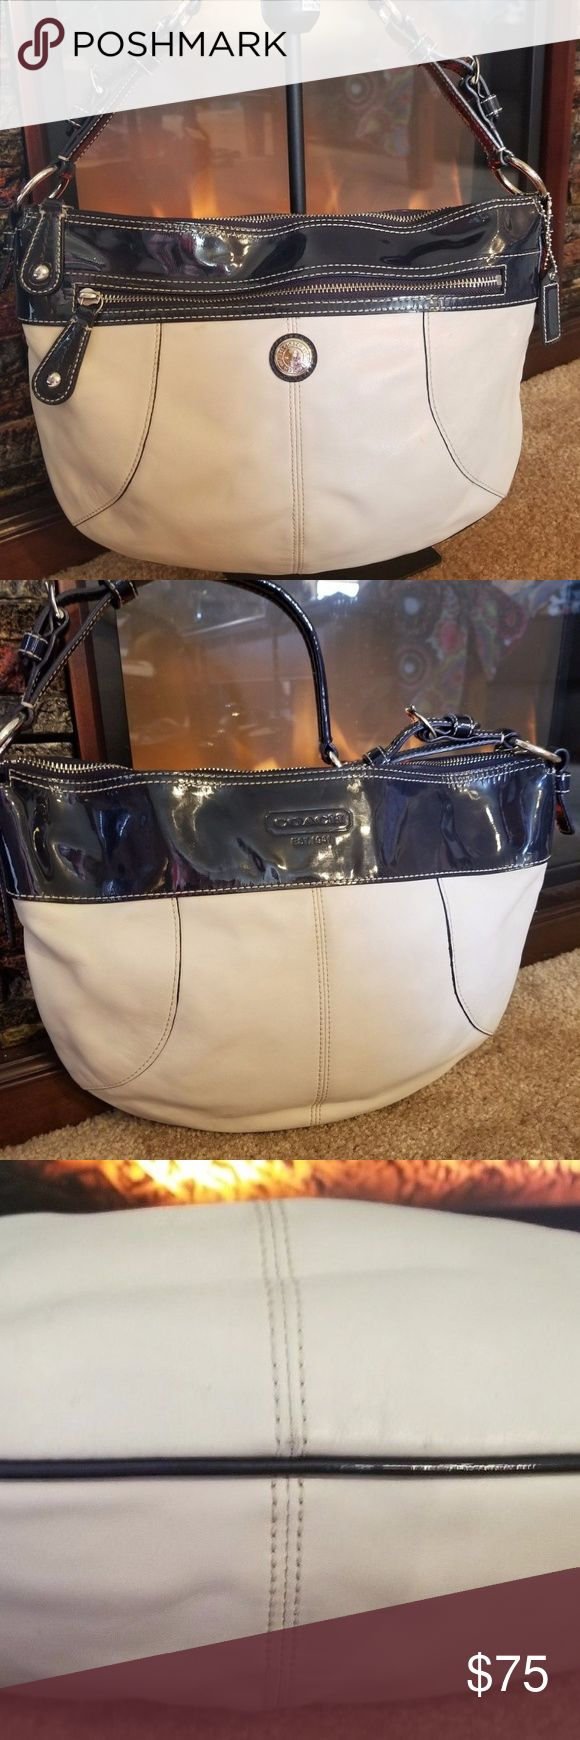 Coach White Leather Handbag Sailor Navy Patent Lea Coach White Leather Handbag Sailor Navy Patent Leather Some ink Mark that should come off with a Cleaning Coach Bags Shoulder Bags